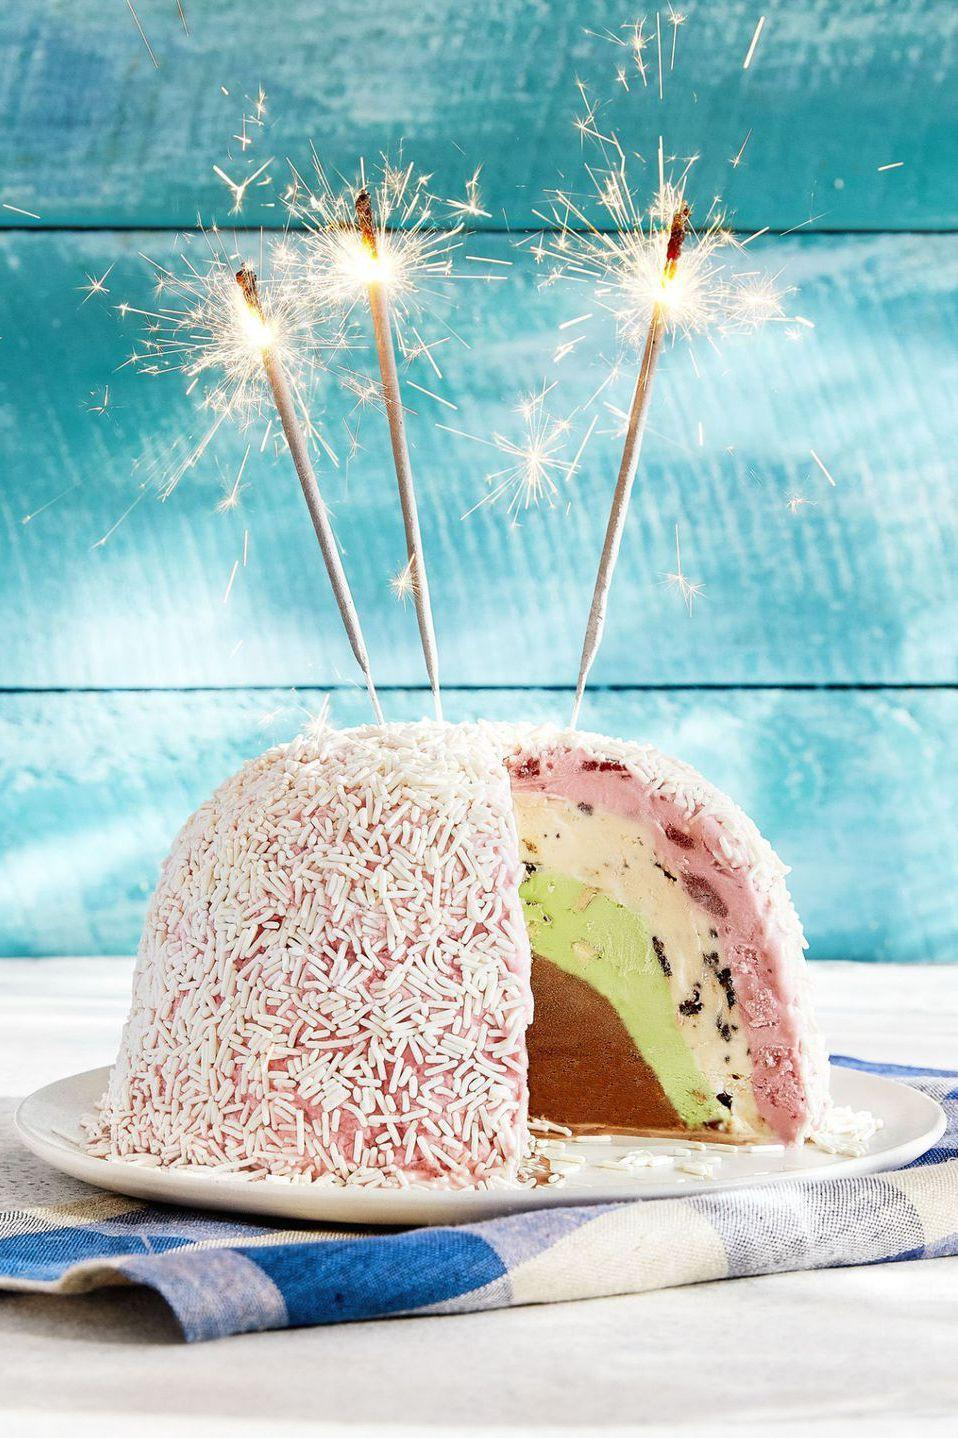 """<p>Why serve your cake with a side of ice cream when you can have four layers of what you <em>really</em> want? And to top it all off, this recipe calls for sprinkles and sparkler candles.</p><p><em><a href=""""https://www.countryliving.com/food-drinks/recipes/a43073/blue-bell-ice-cream-bombe-recipe/"""" rel=""""nofollow noopener"""" target=""""_blank"""" data-ylk=""""slk:Get the recipe from Country Living »"""" class=""""link rapid-noclick-resp"""">Get the recipe from Country Living »</a></em></p><p><strong>RELATED: </strong><a href=""""https://www.goodhousekeeping.com/appliances/ice-cream-maker-reviews/g258/best-ice-cream-makers/"""" rel=""""nofollow noopener"""" target=""""_blank"""" data-ylk=""""slk:9 Best Ice Cream Makers for Easy At-Home Sundaes"""" class=""""link rapid-noclick-resp"""">9 Best Ice Cream Makers for Easy At-Home Sundaes</a><br></p>"""